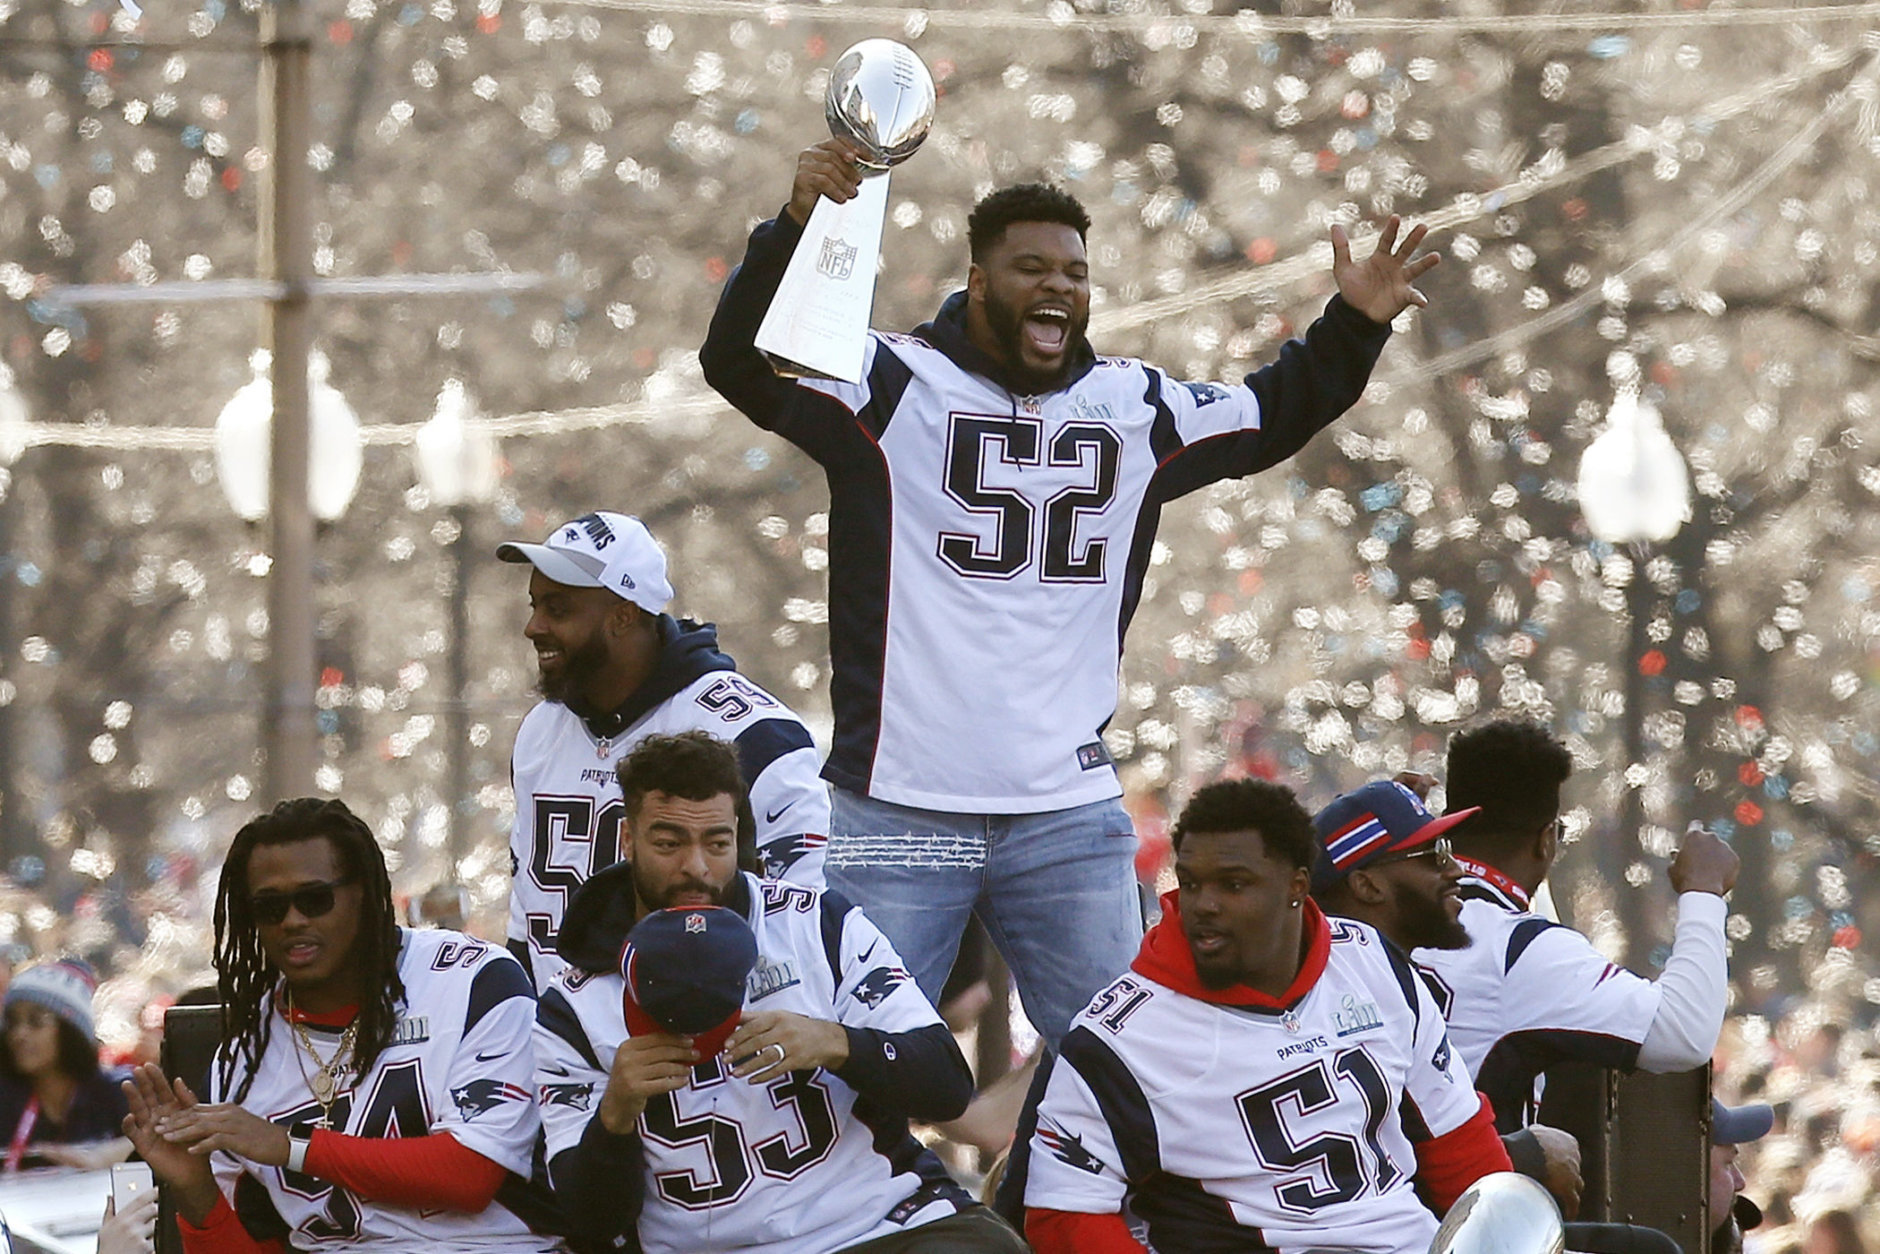 New England Patriots' Elandon Roberts (52) rides a duck boat during the Patriots parade through downtown Boston, Tuesday, Feb. 5, 2019, to celebrate their win over the Los Angeles Rams in Sunday's NFL Super Bowl 53 football game in Atlanta. (AP Photo/Michael Dwyer)